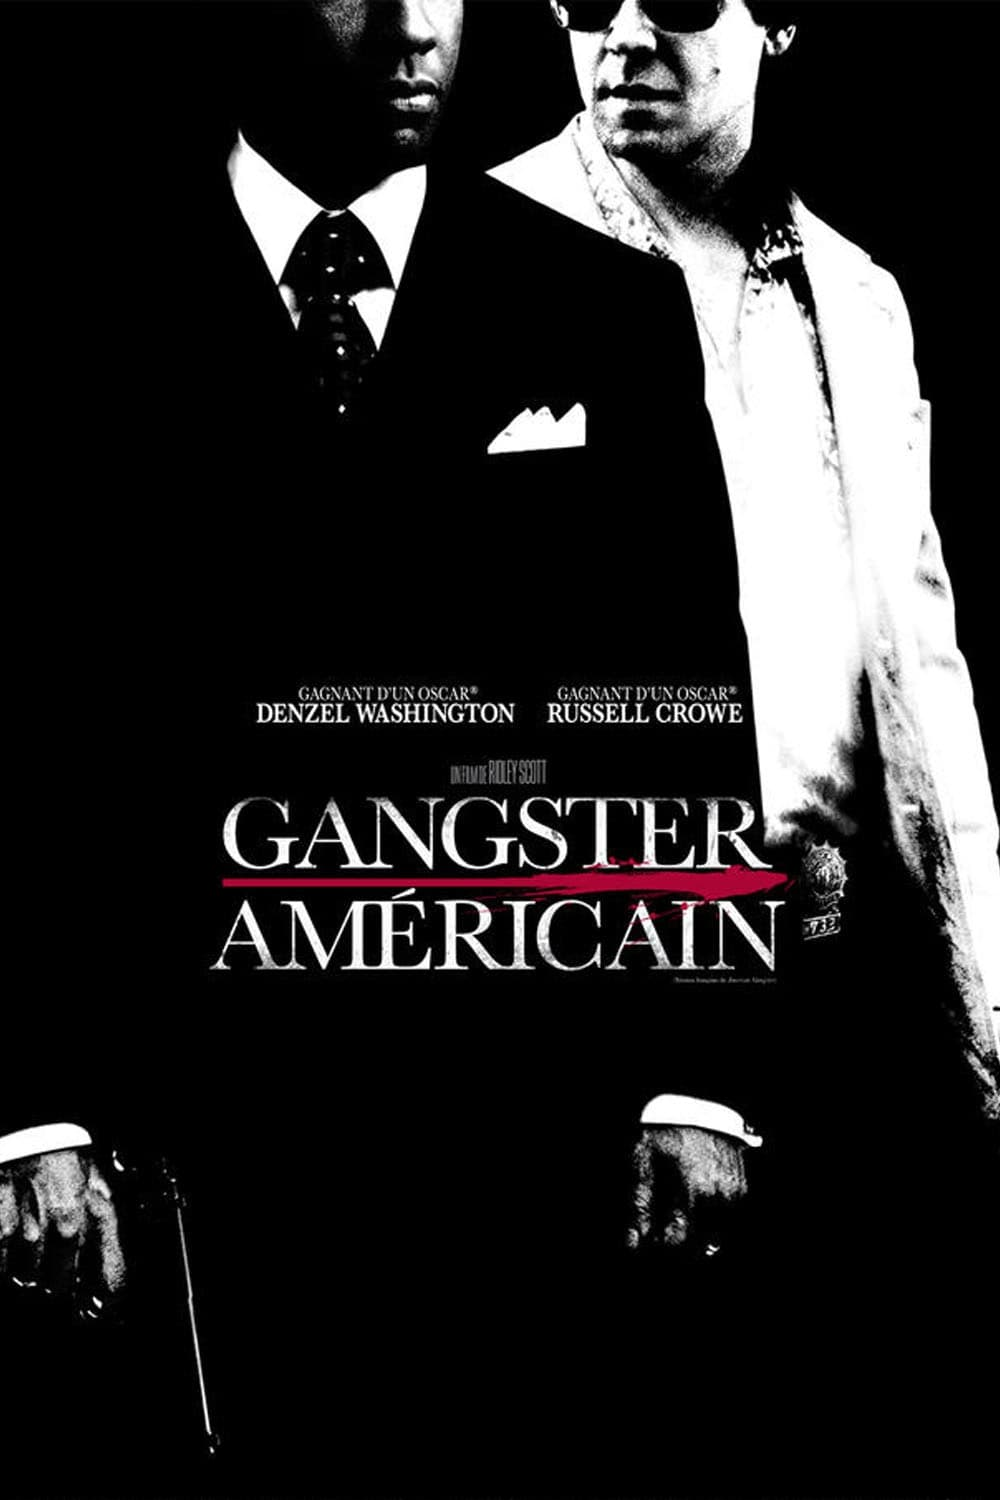 The American Gangster Film